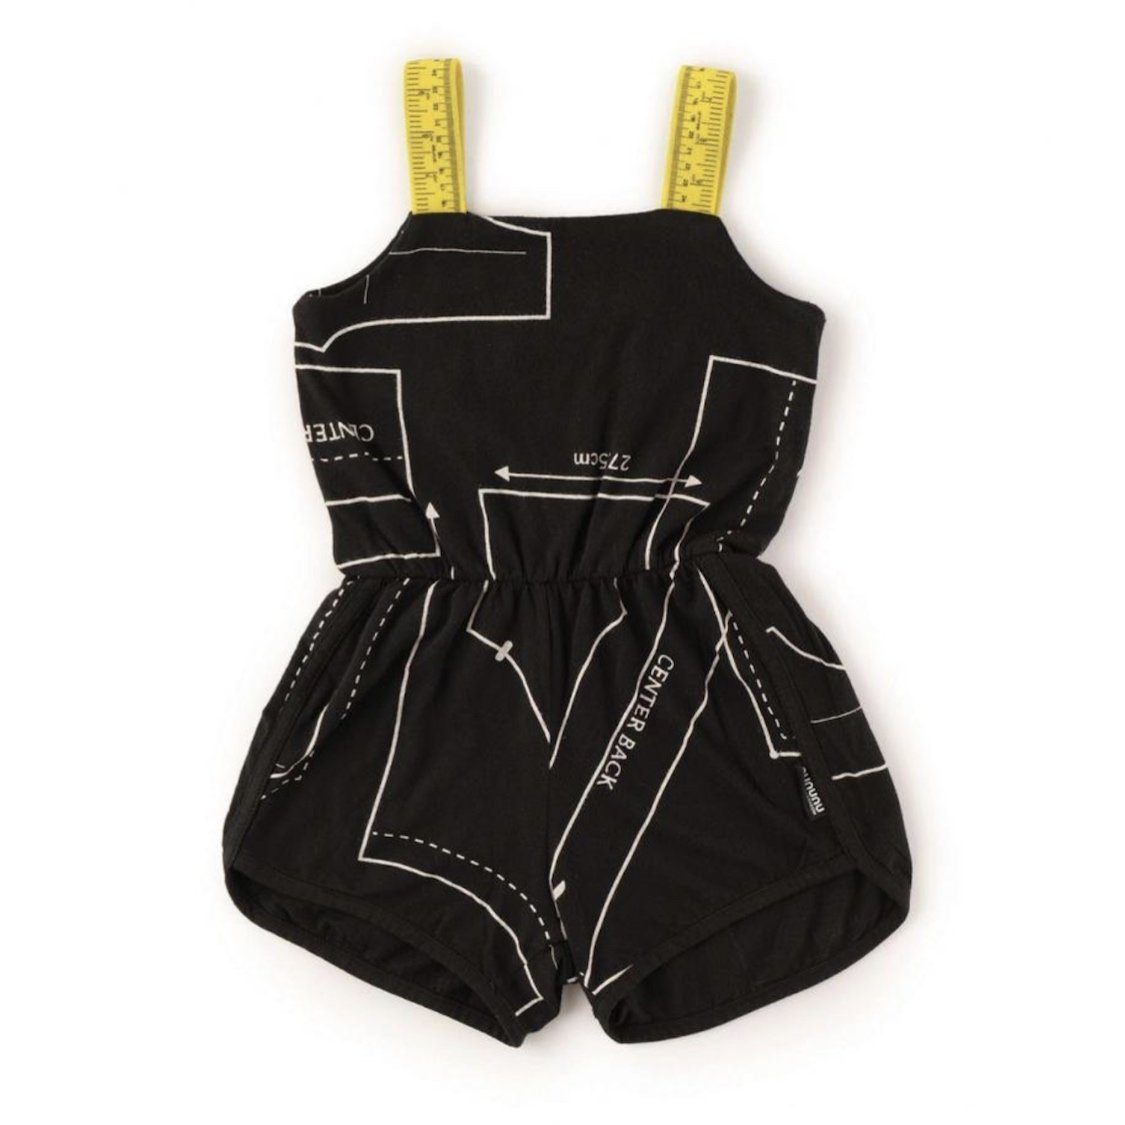 NU2541 - Nununu Black Girls Tailor Kit Strap Overall Romper Nununu